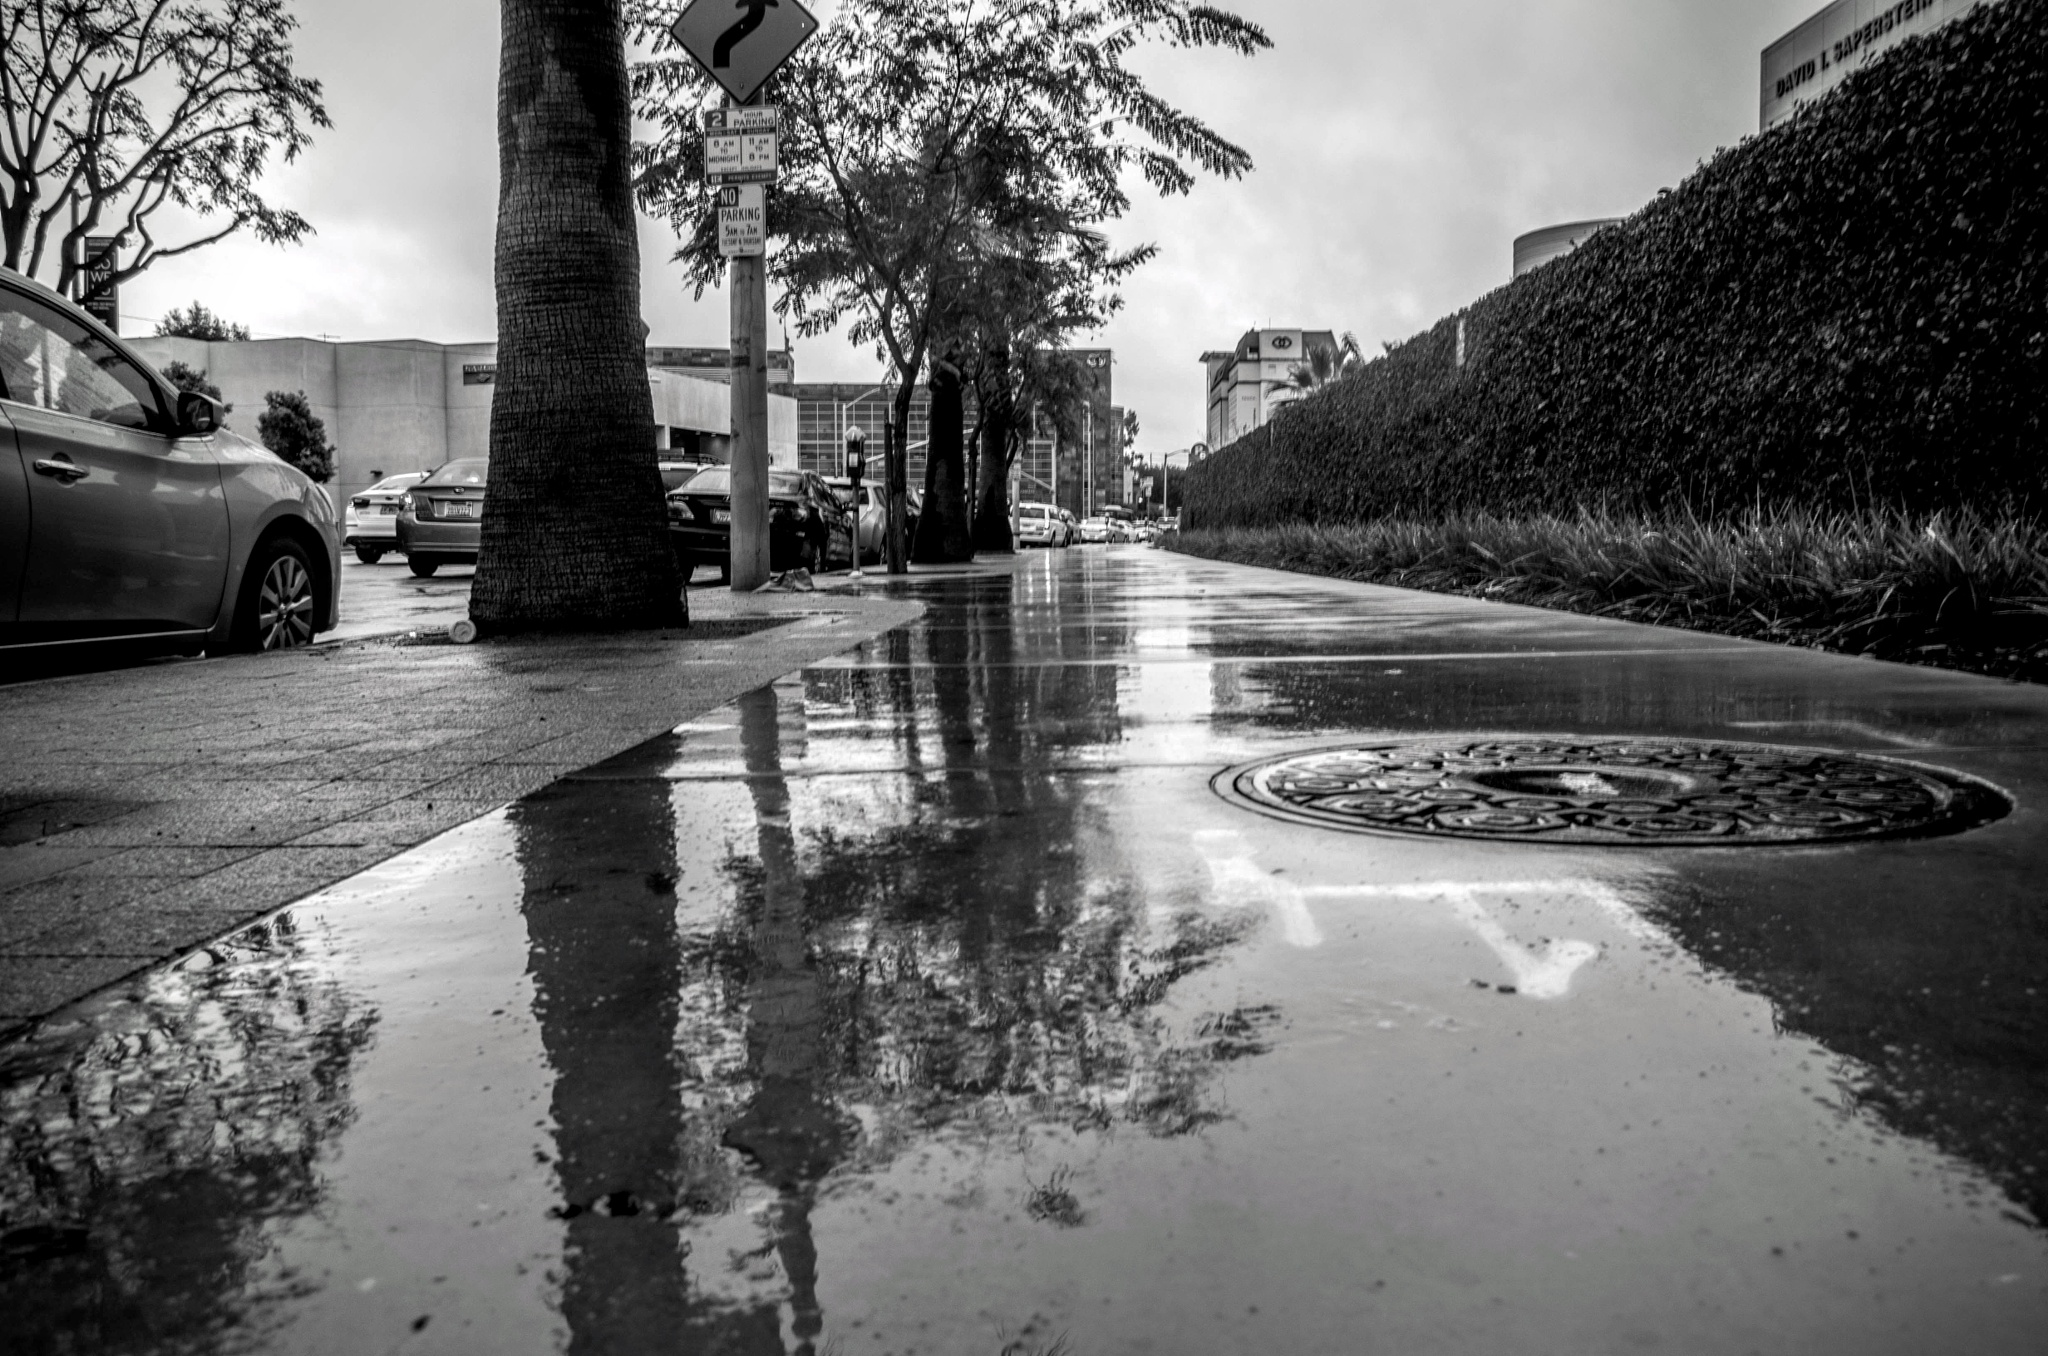 Rainy Streets by ReaperScoob Photography